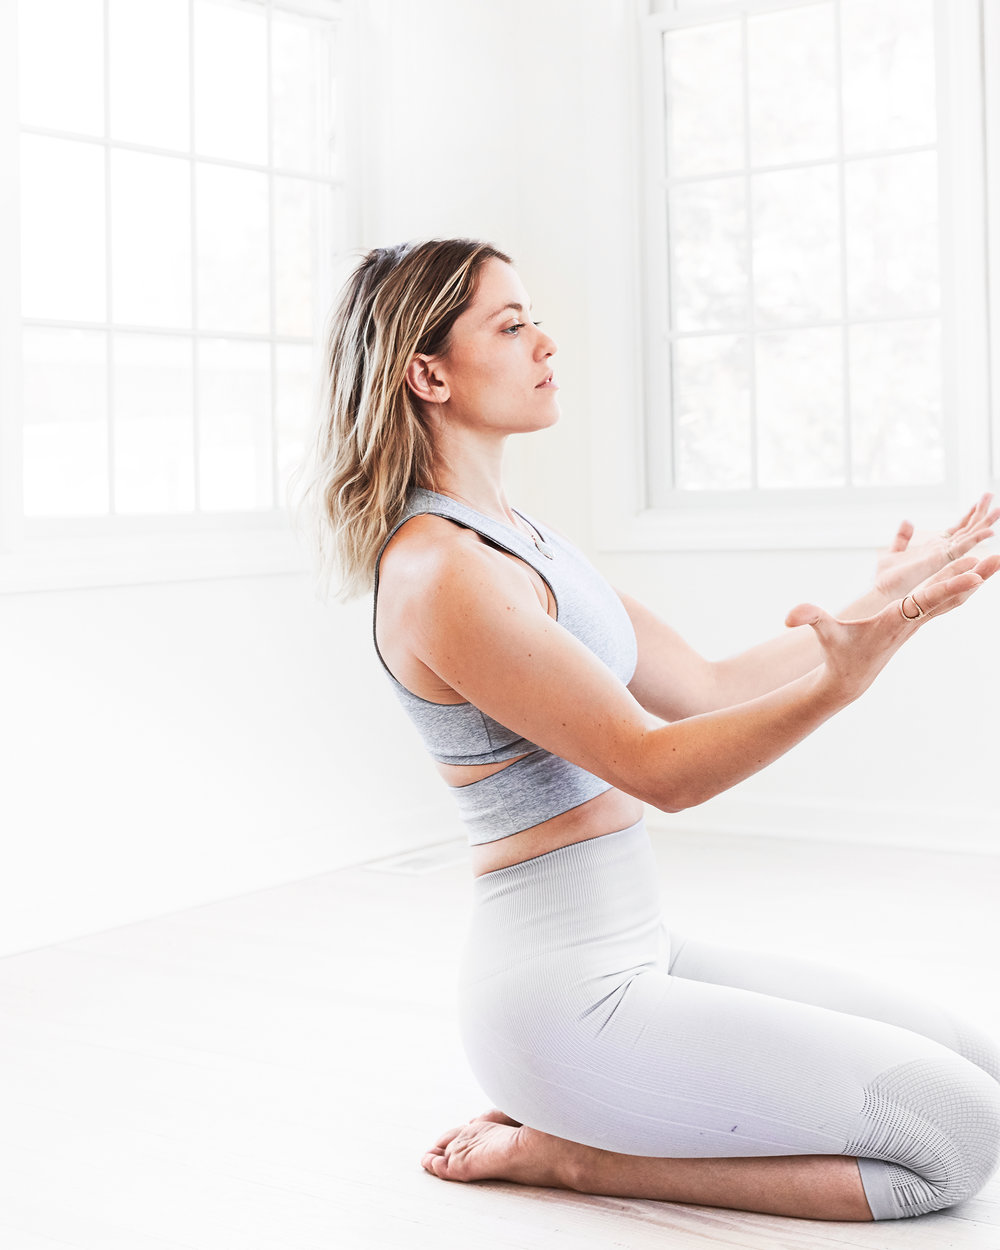 It balances intensity and fire with introspection and softness. It is designed in a way to get you out of your head and back into your body, which for many people is extremely cathartic. -